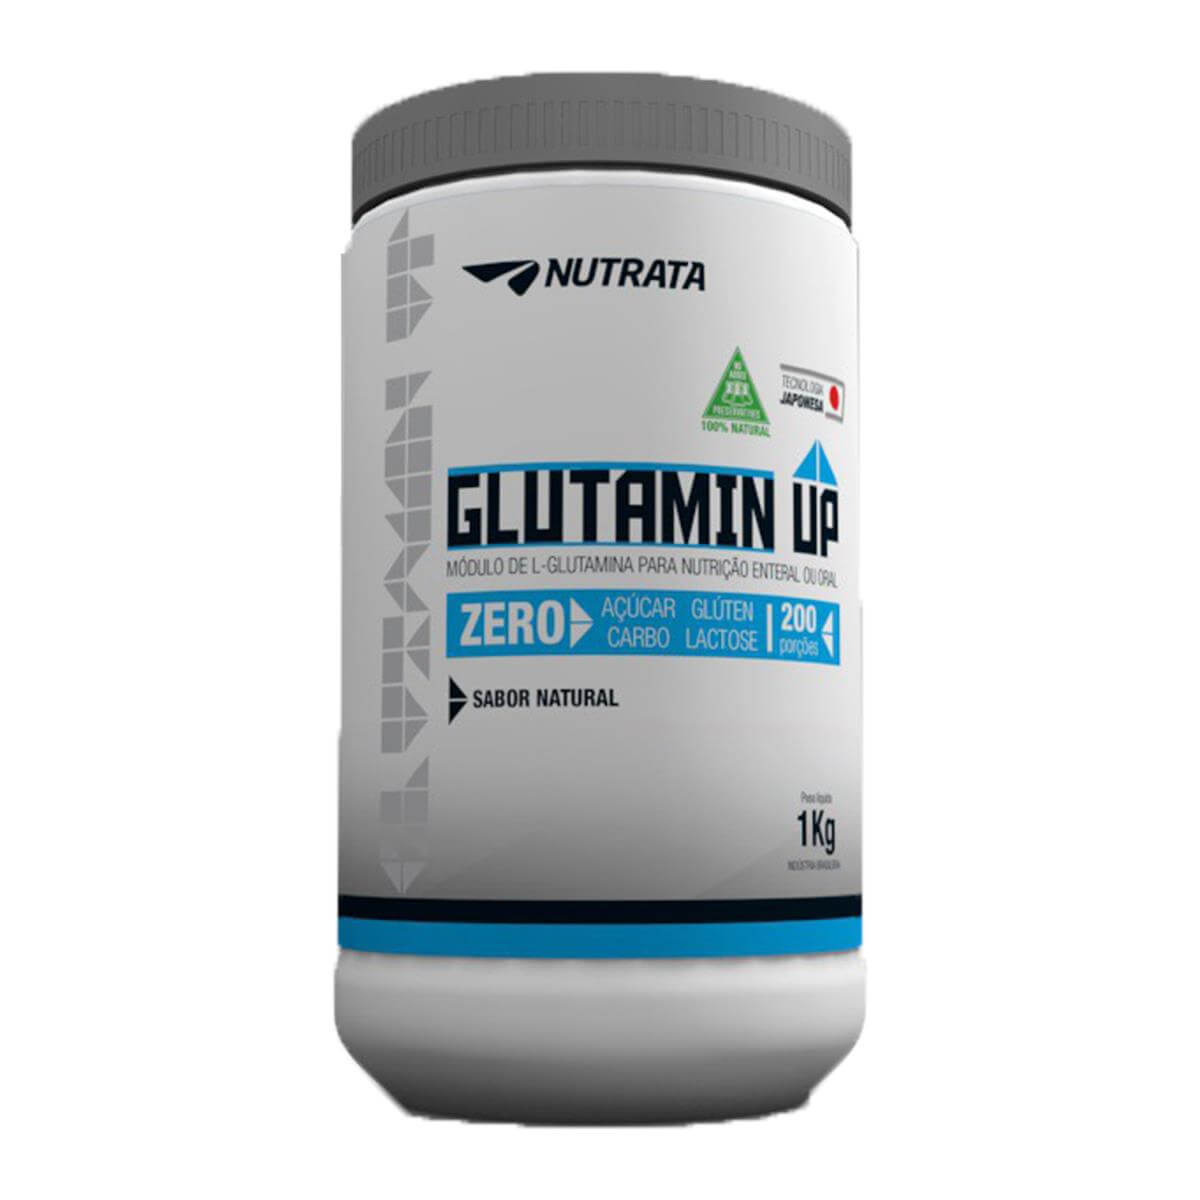 Glutamin Up Nutrata - 1kg